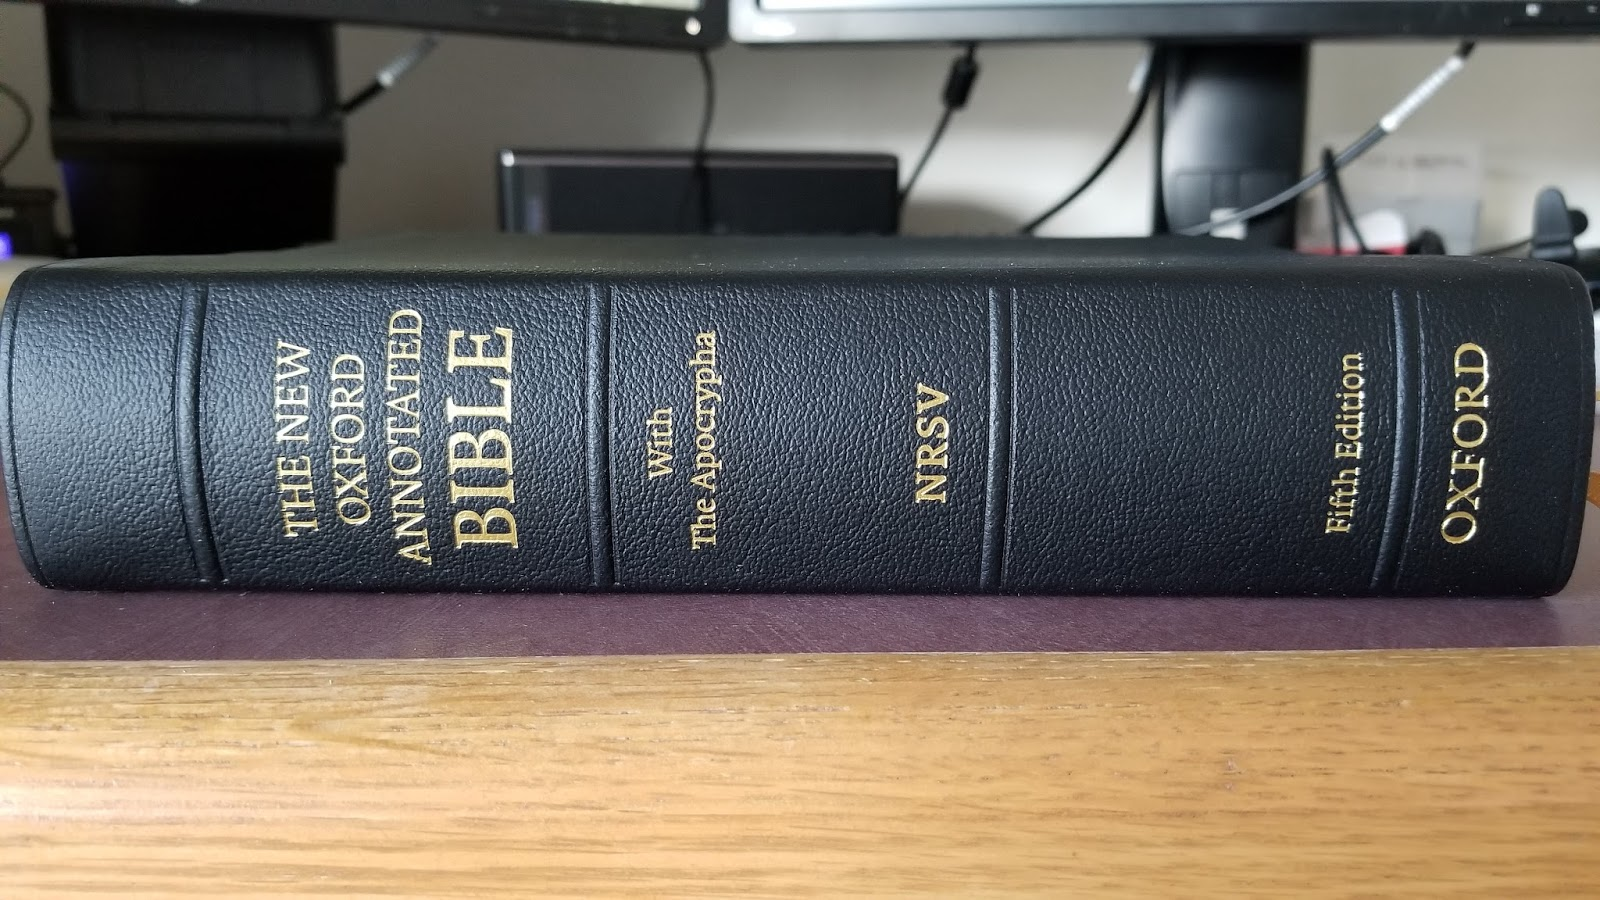 New oxford annotated bible, 4th edition: q&a blog posts this lamp.